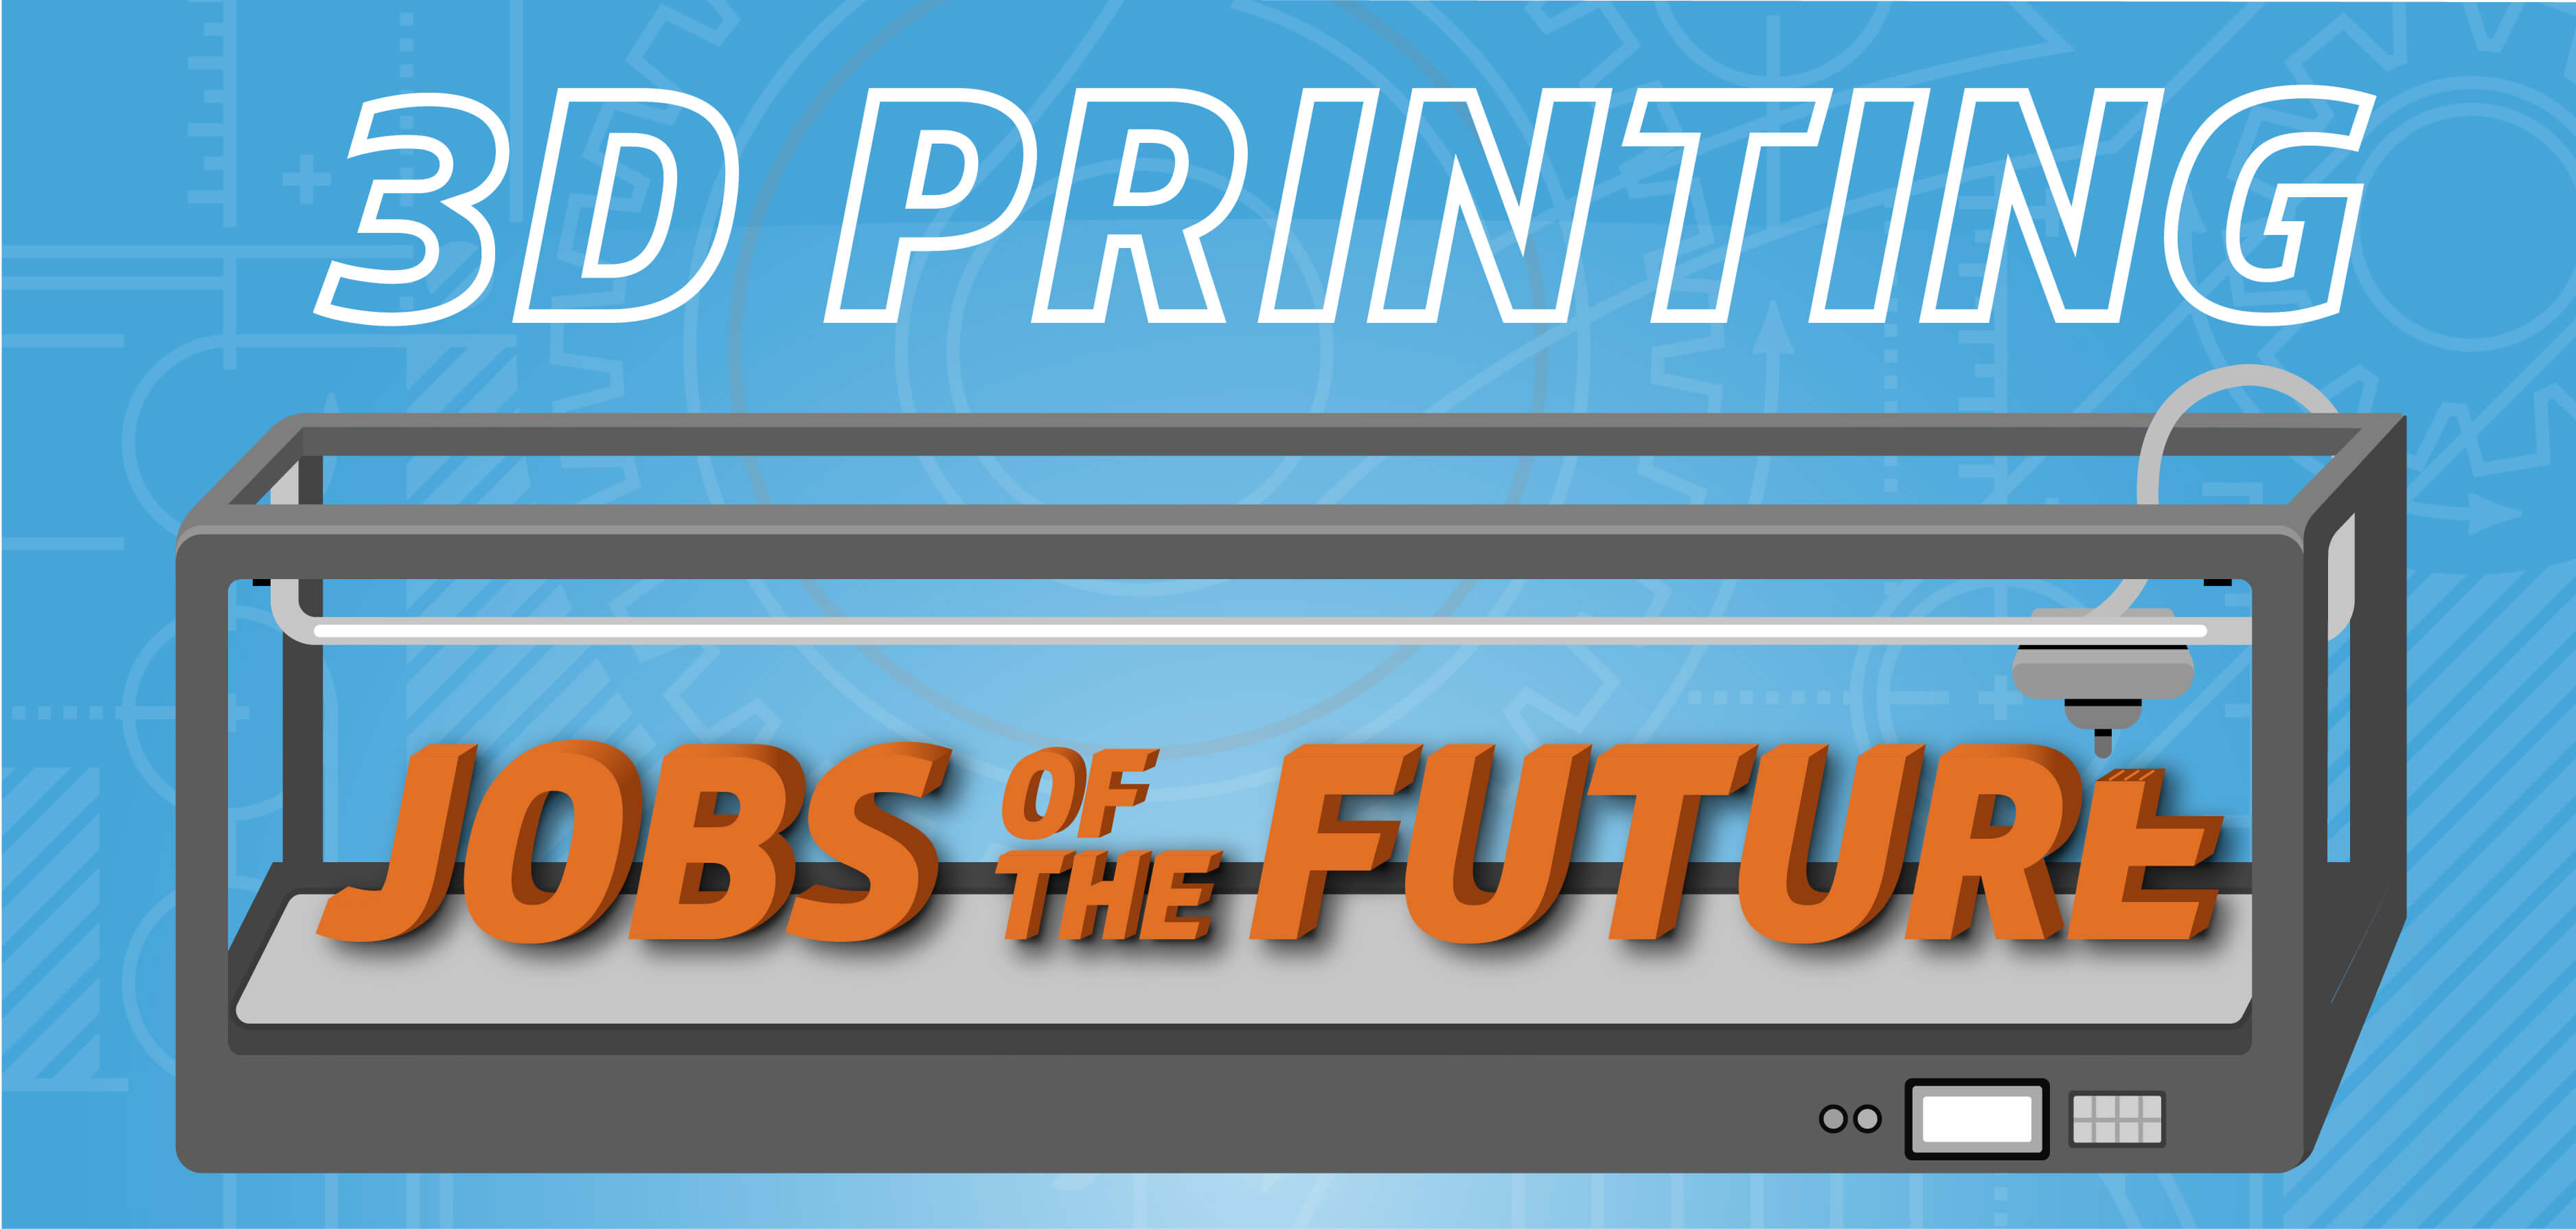 3d printing jobs of the future